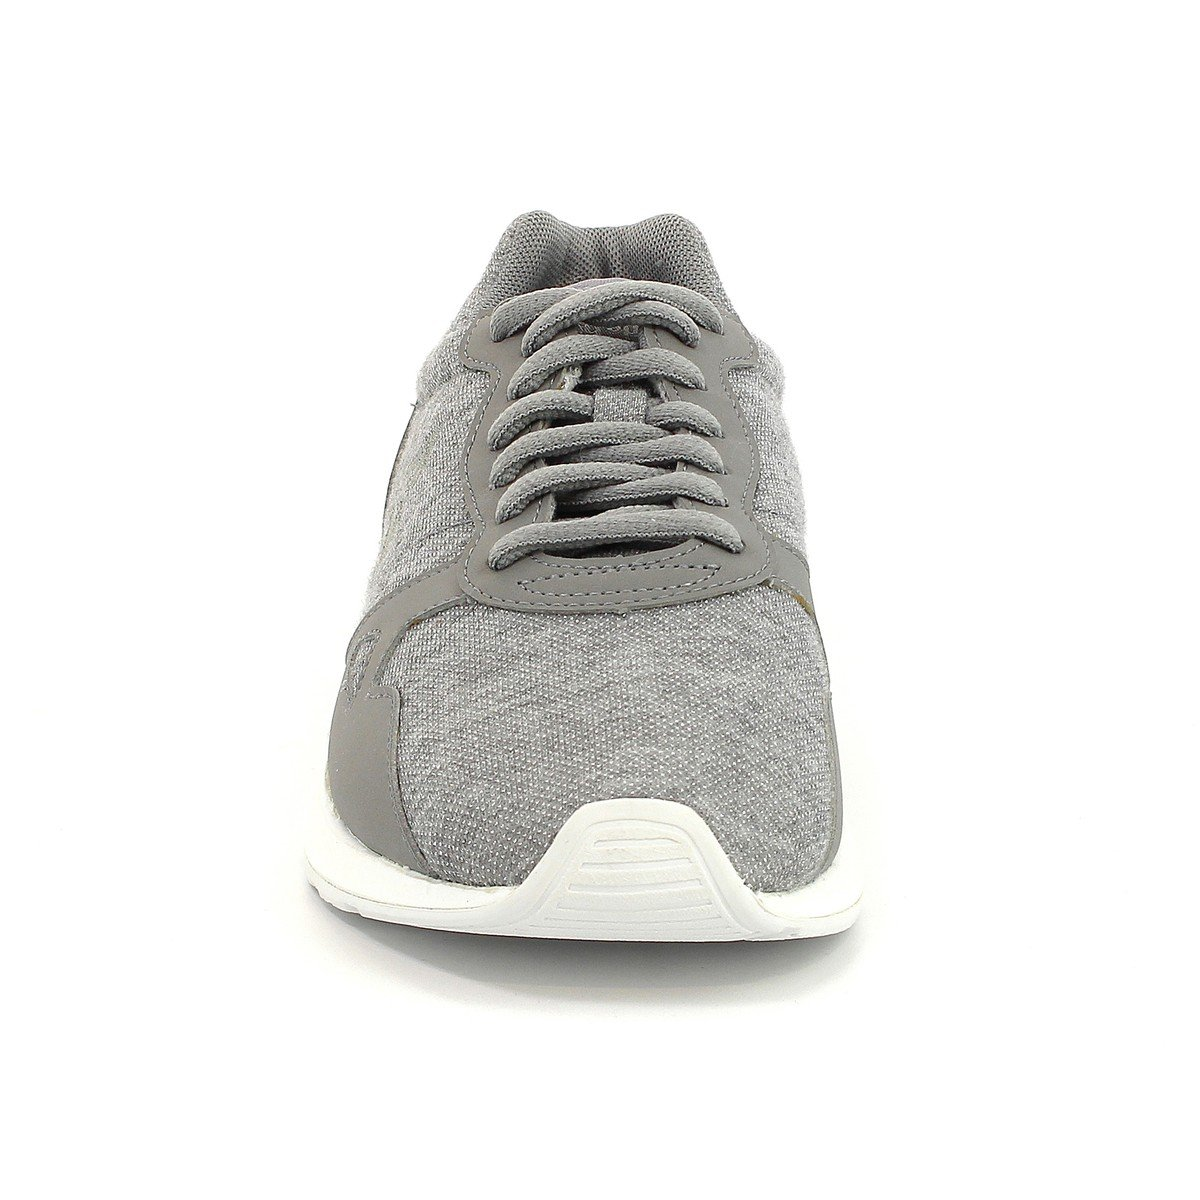 LE COQ SPORTIF Womens LCS R600 Summer Glitter Trainers Grey Size 41